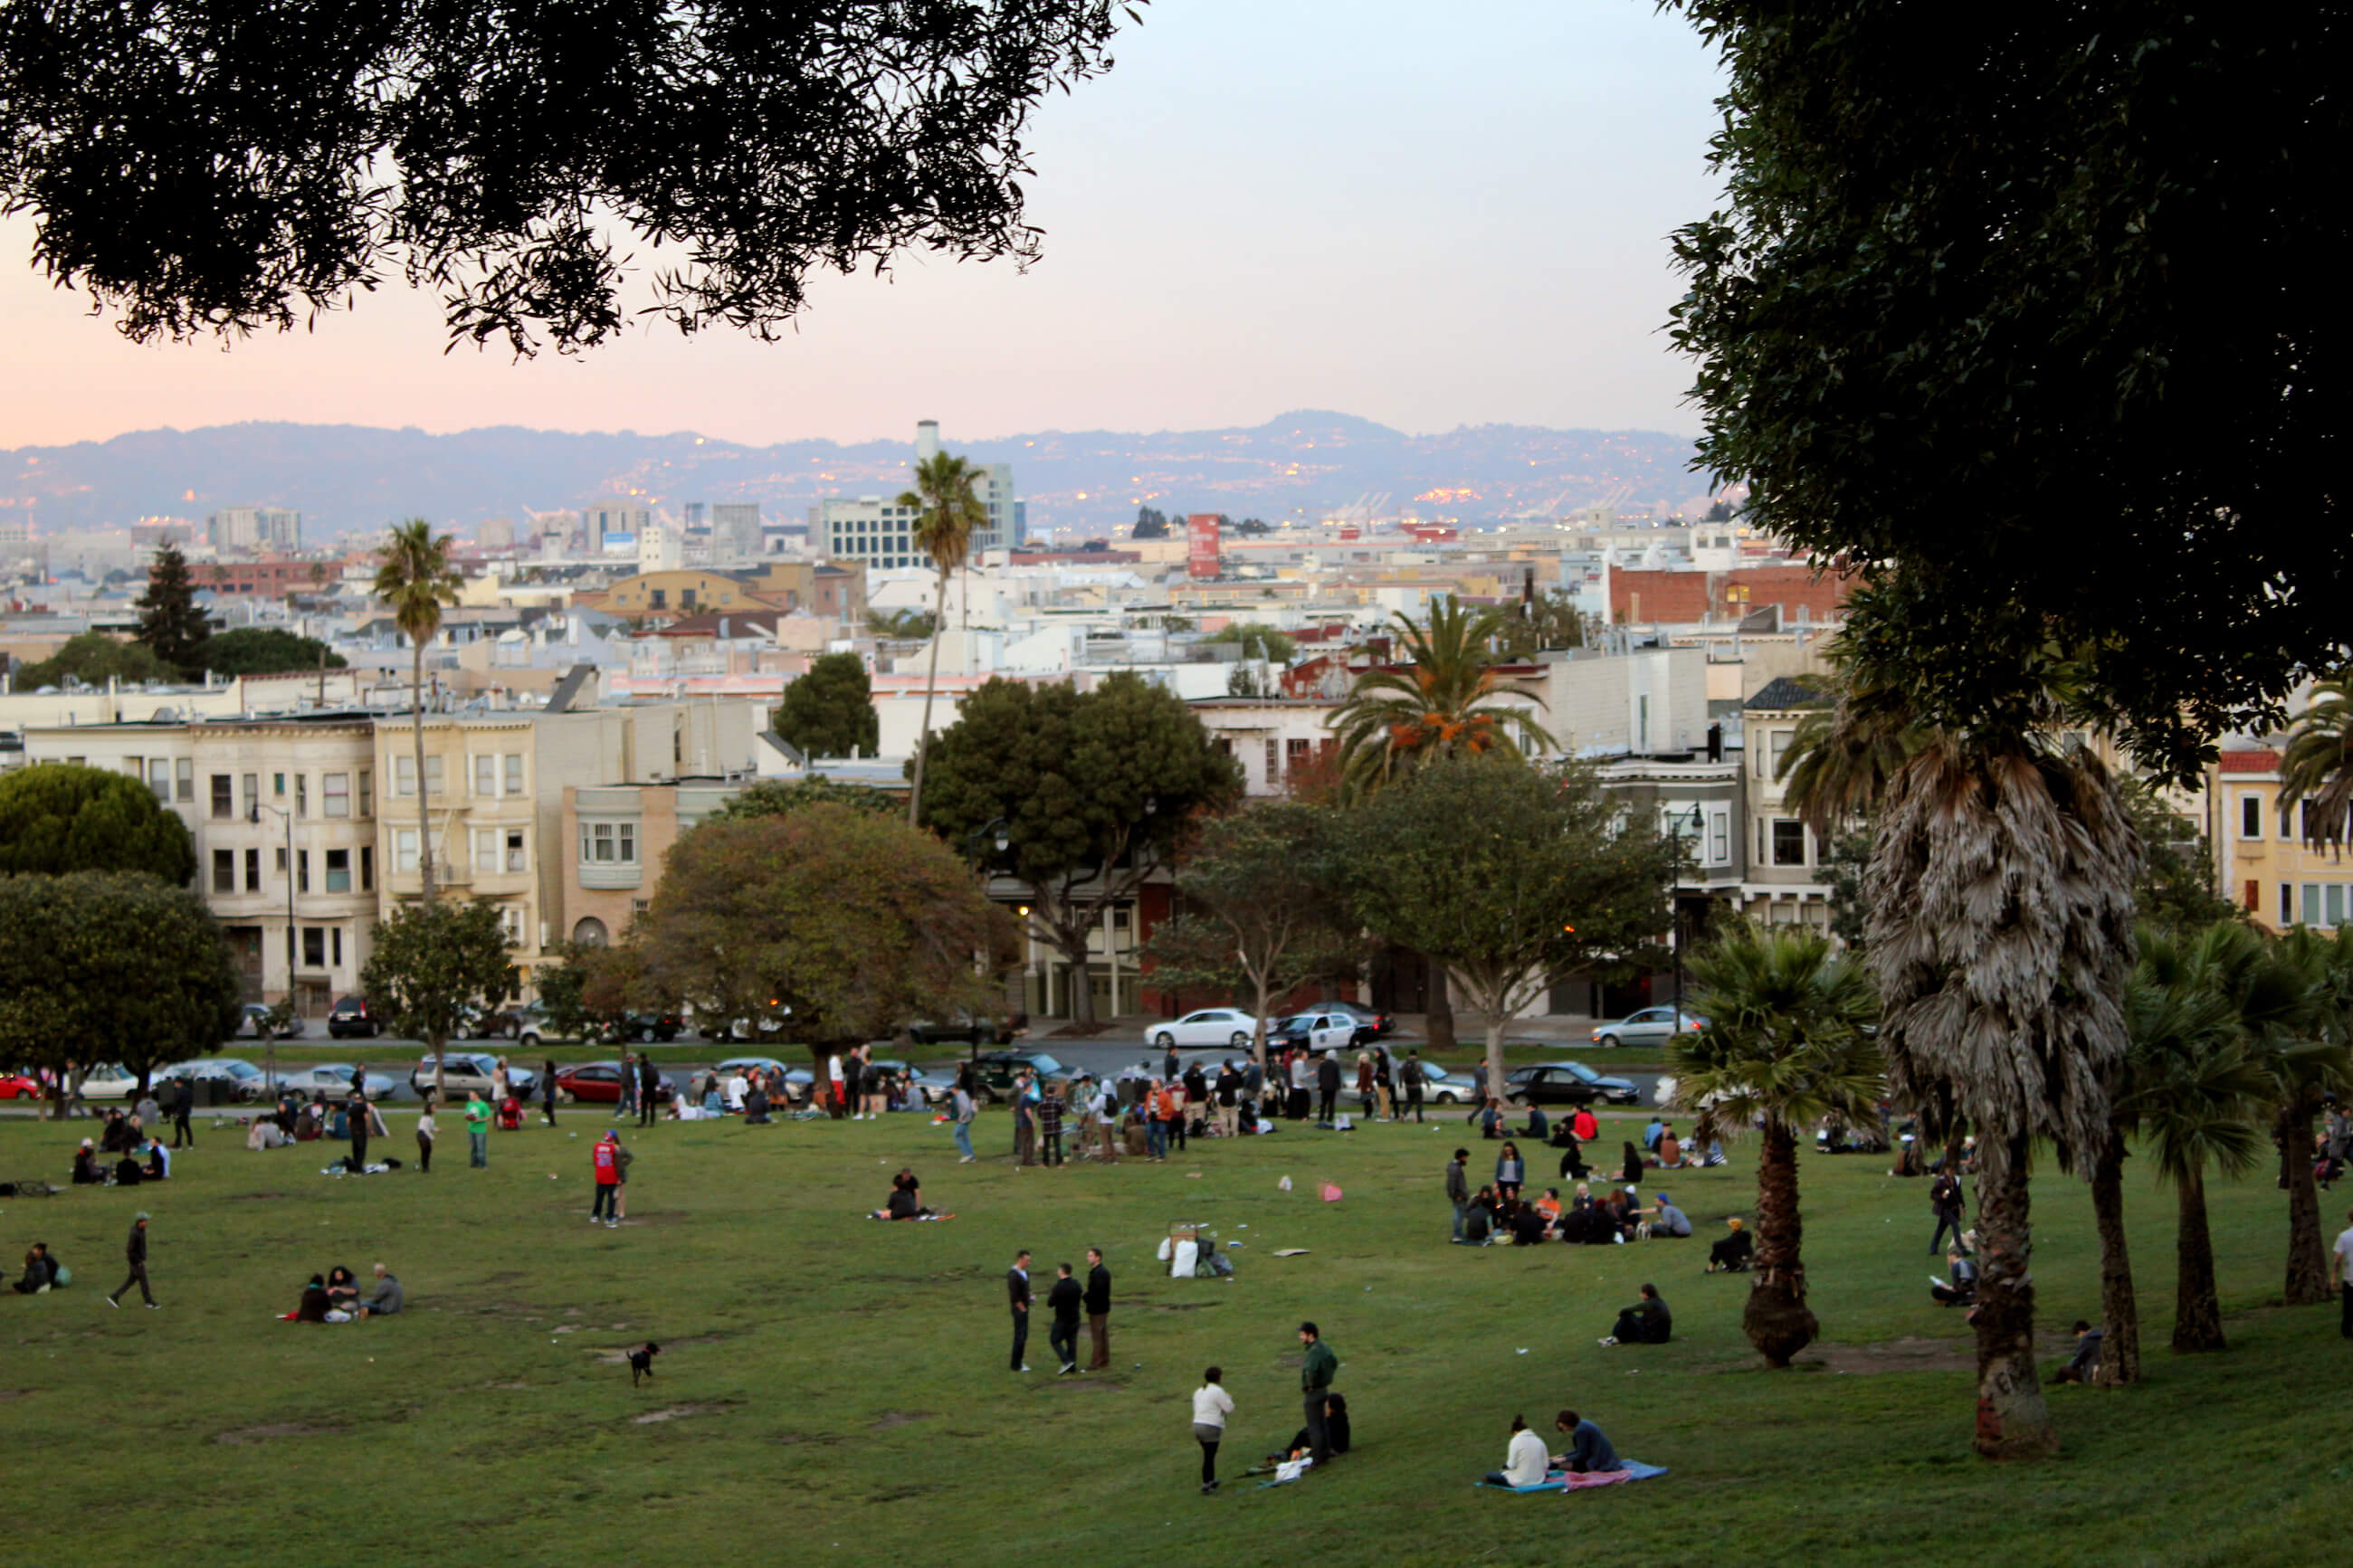 Dolores Park in San Francisco Mission District